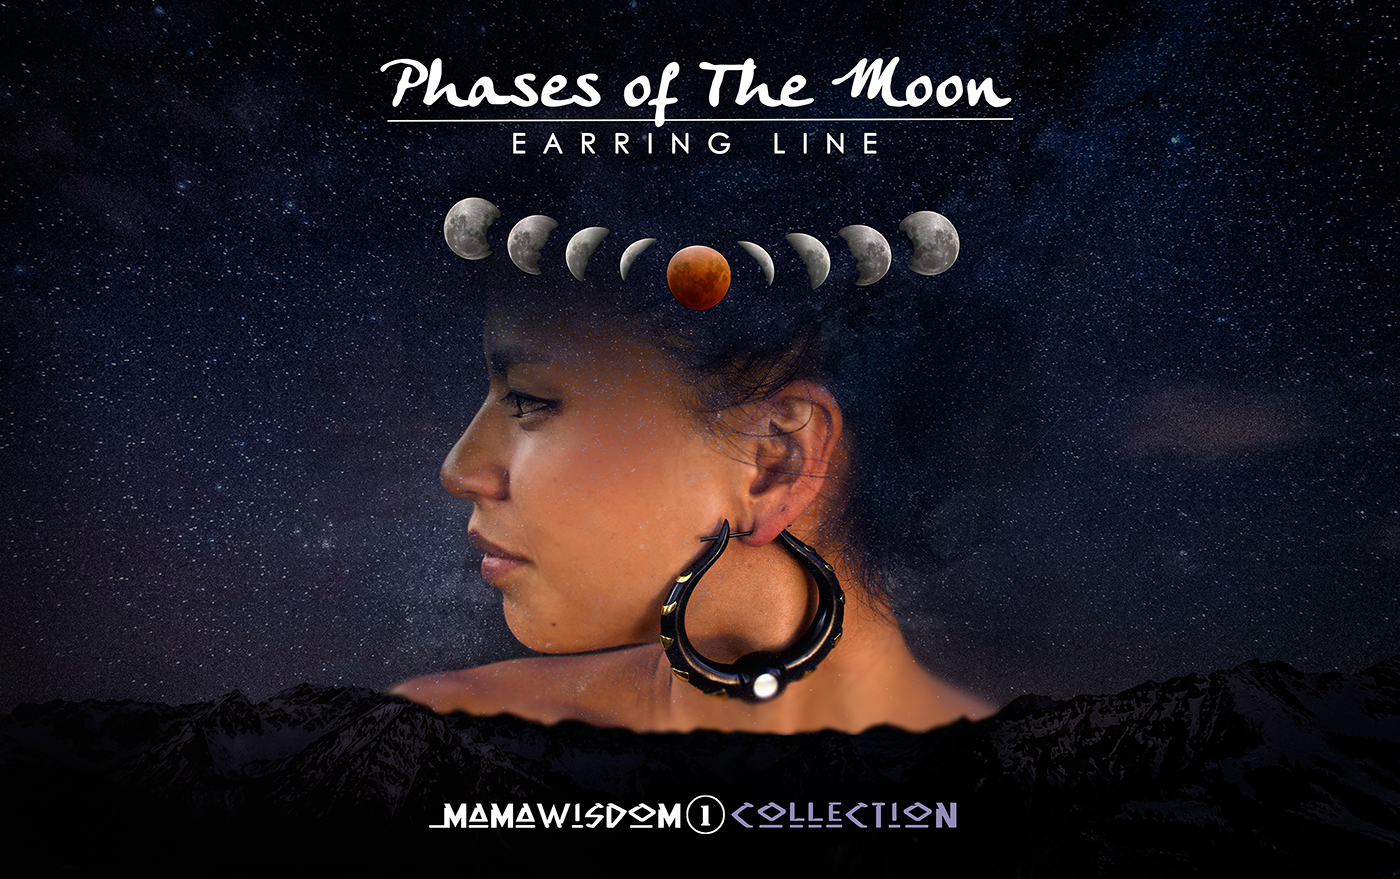 Jewelry: The MamaWisdom1 Collection